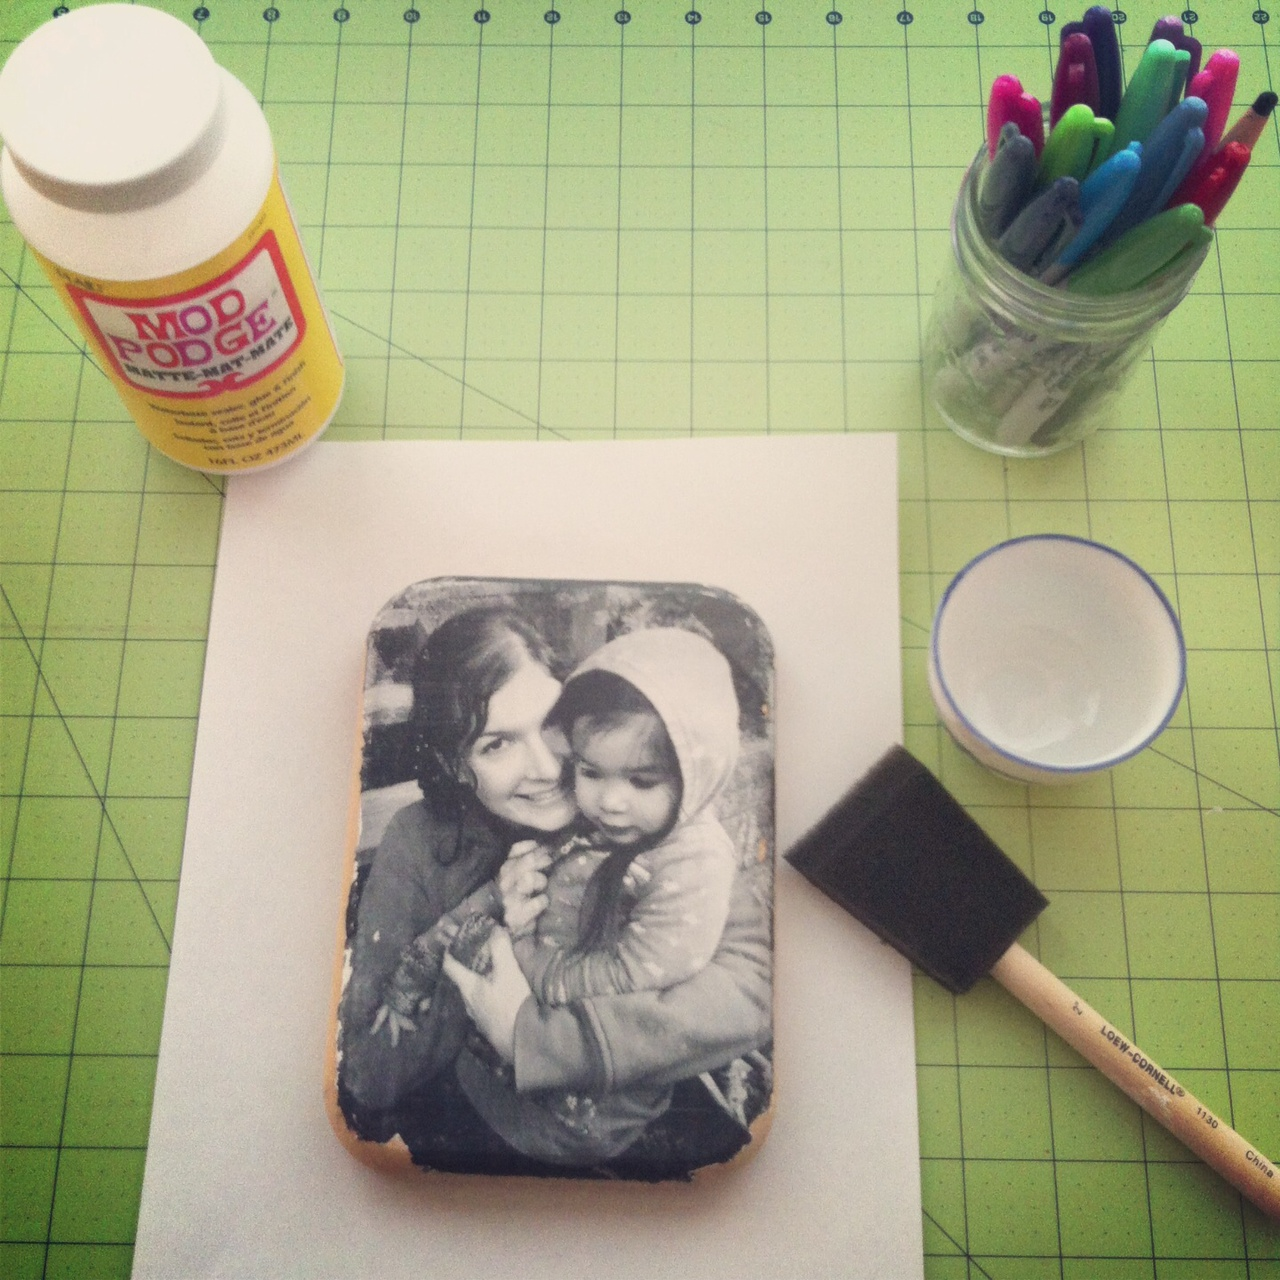 Photo to Wood Transfer Tutorial With Step By Step Photos and Instructions To Make A One of a Kind Handmade Gift. Great for photography lovers!